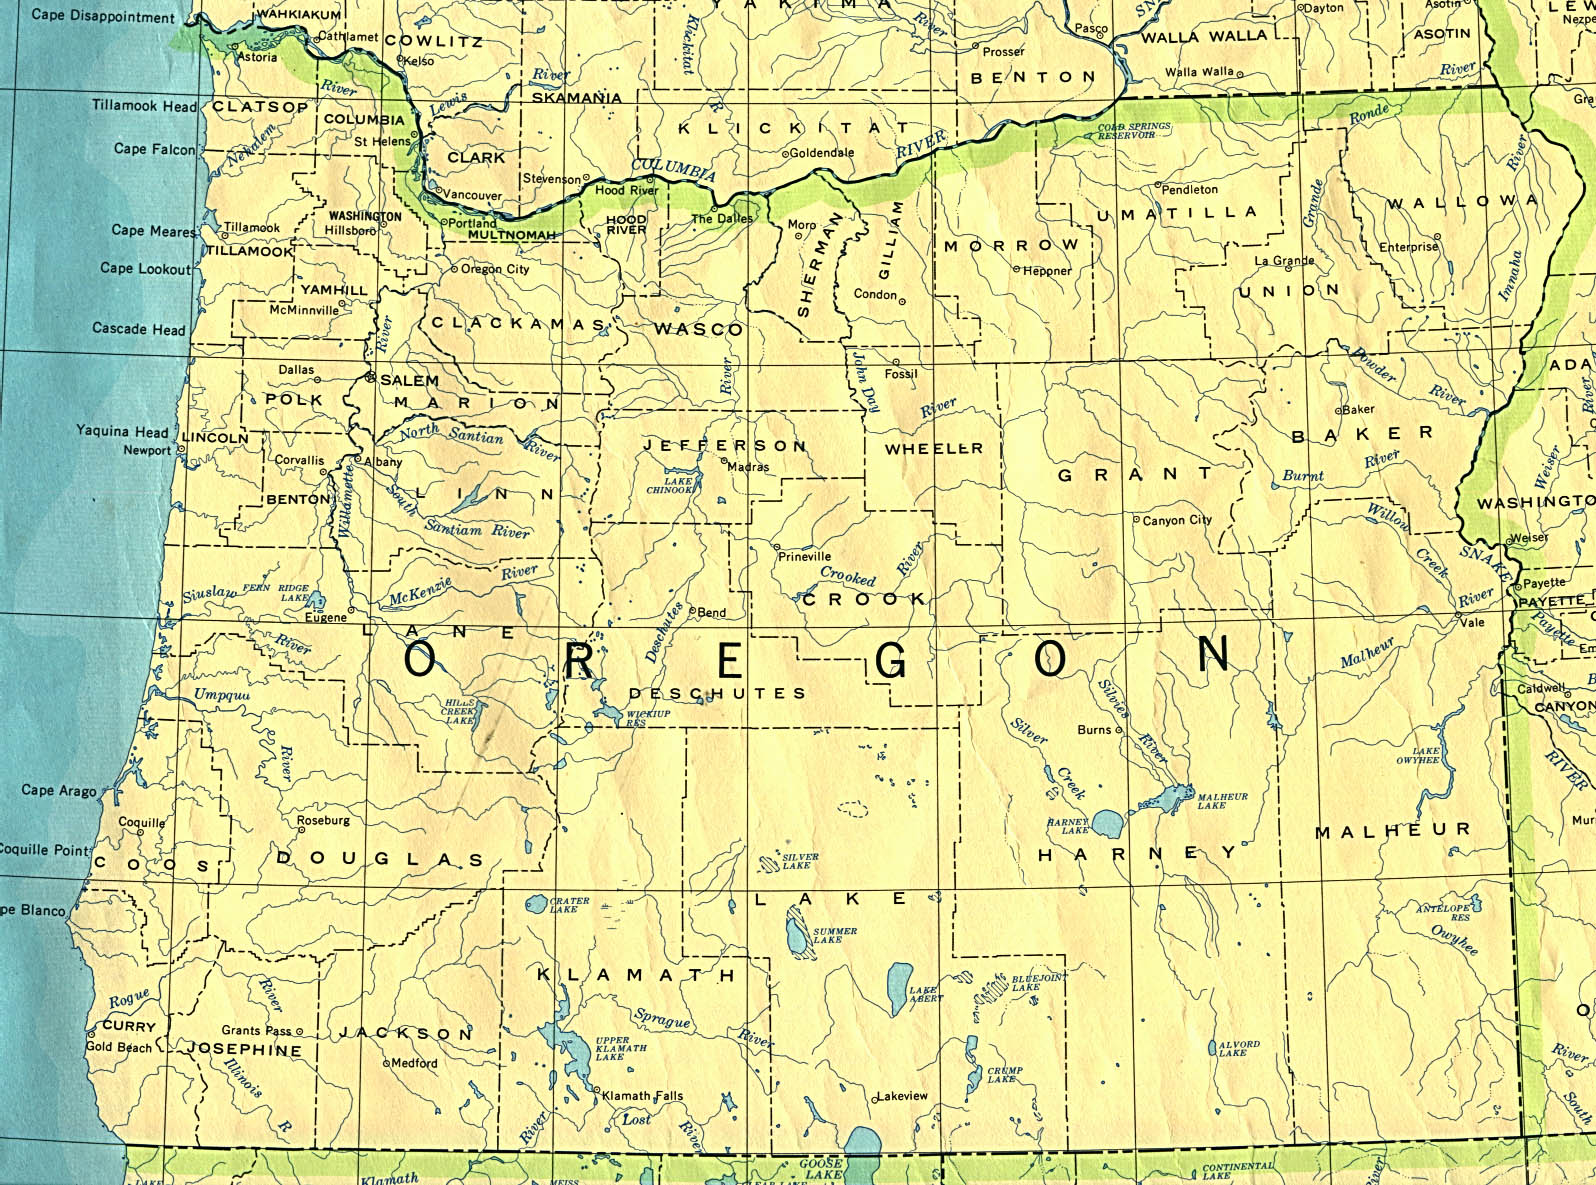 Map Of Or File:Oregon 90.   Wikimedia Commons Map Of Or